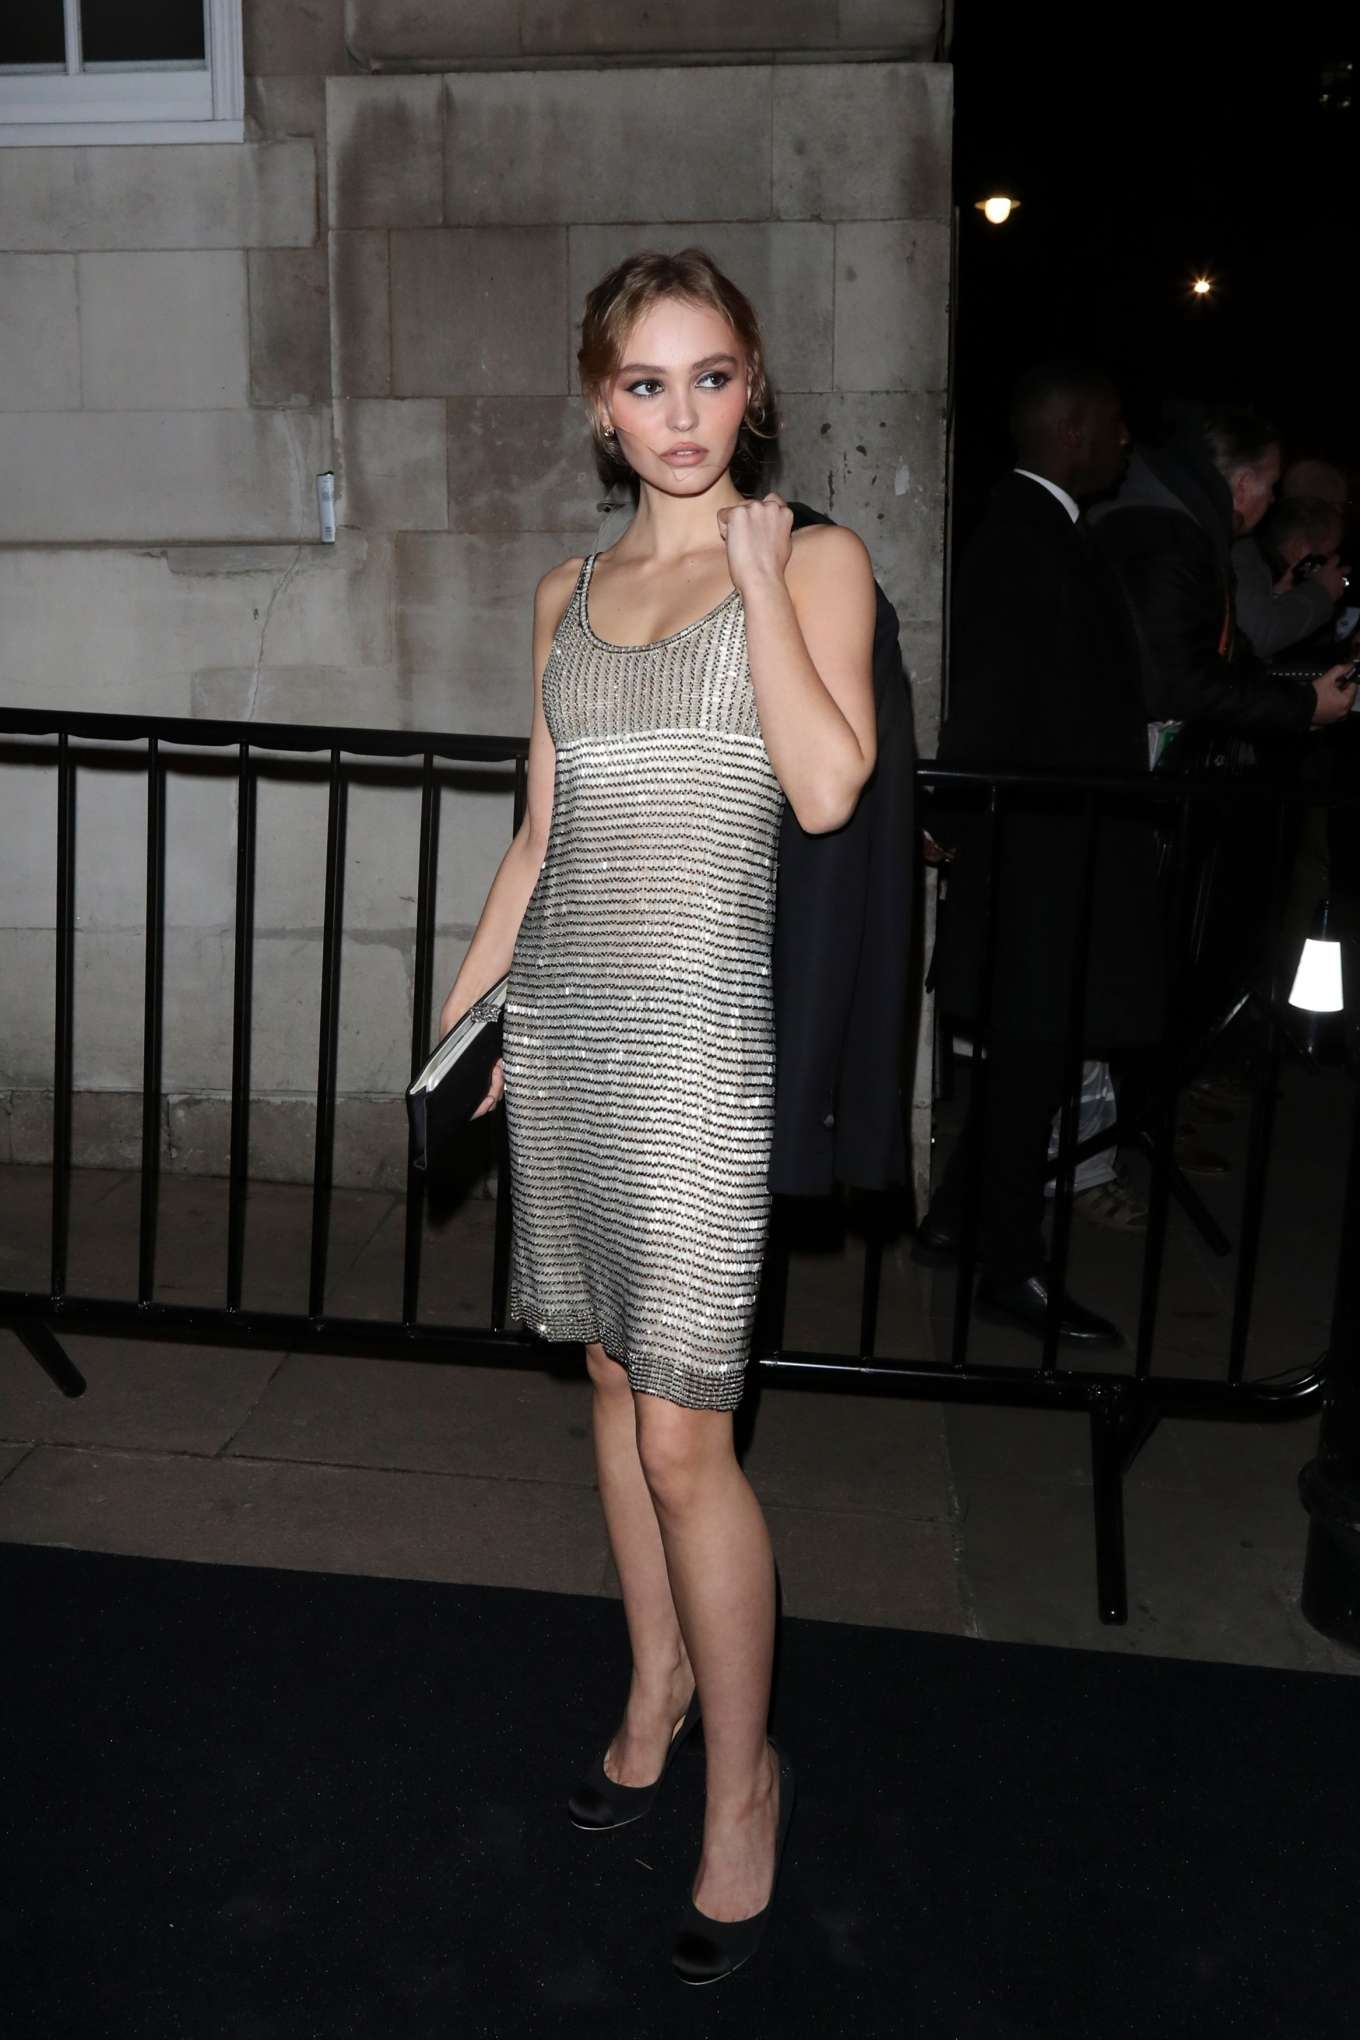 Lily Rose Depp at the Charles Finch and CHANEL Pre-BAFTA Party in London